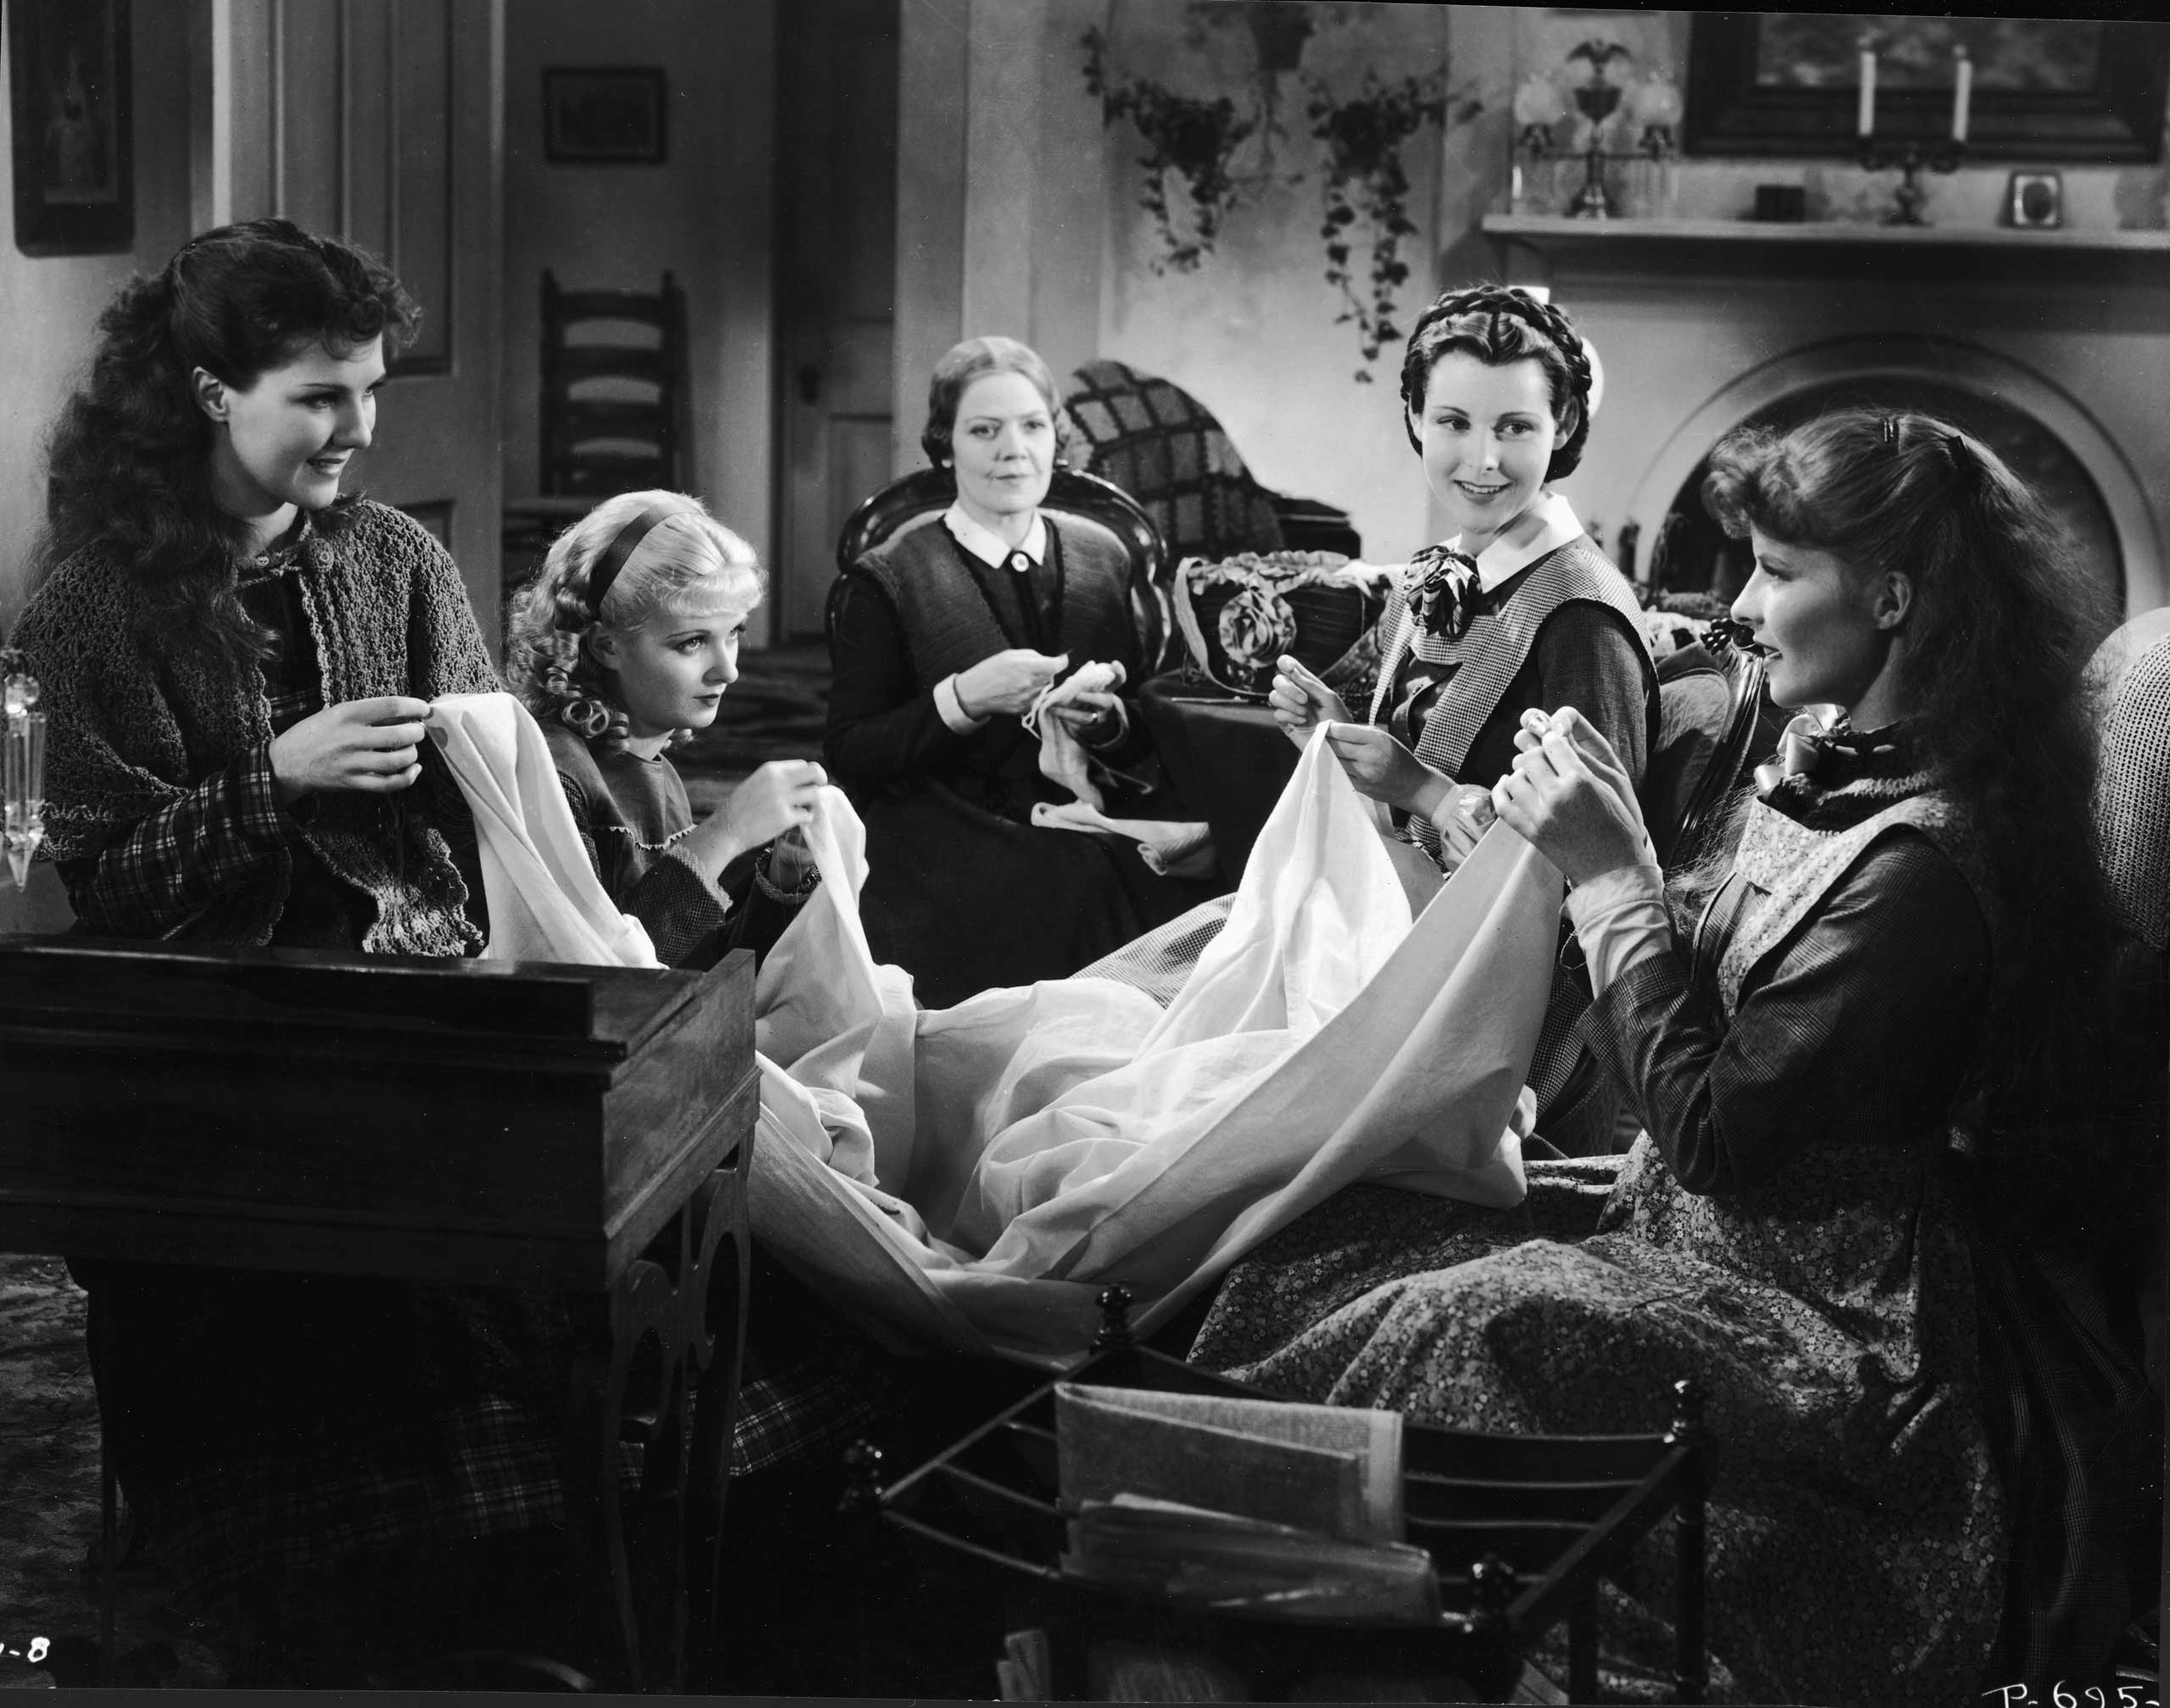 American actresses Jean Parker, Joan Bennett, Spring Byington, Frances Dee, and Katharine Hepburn as the March women in a still from an adaptation of Louisa May Alcott's book 'Little Women' directed by George Cukor, 1933.